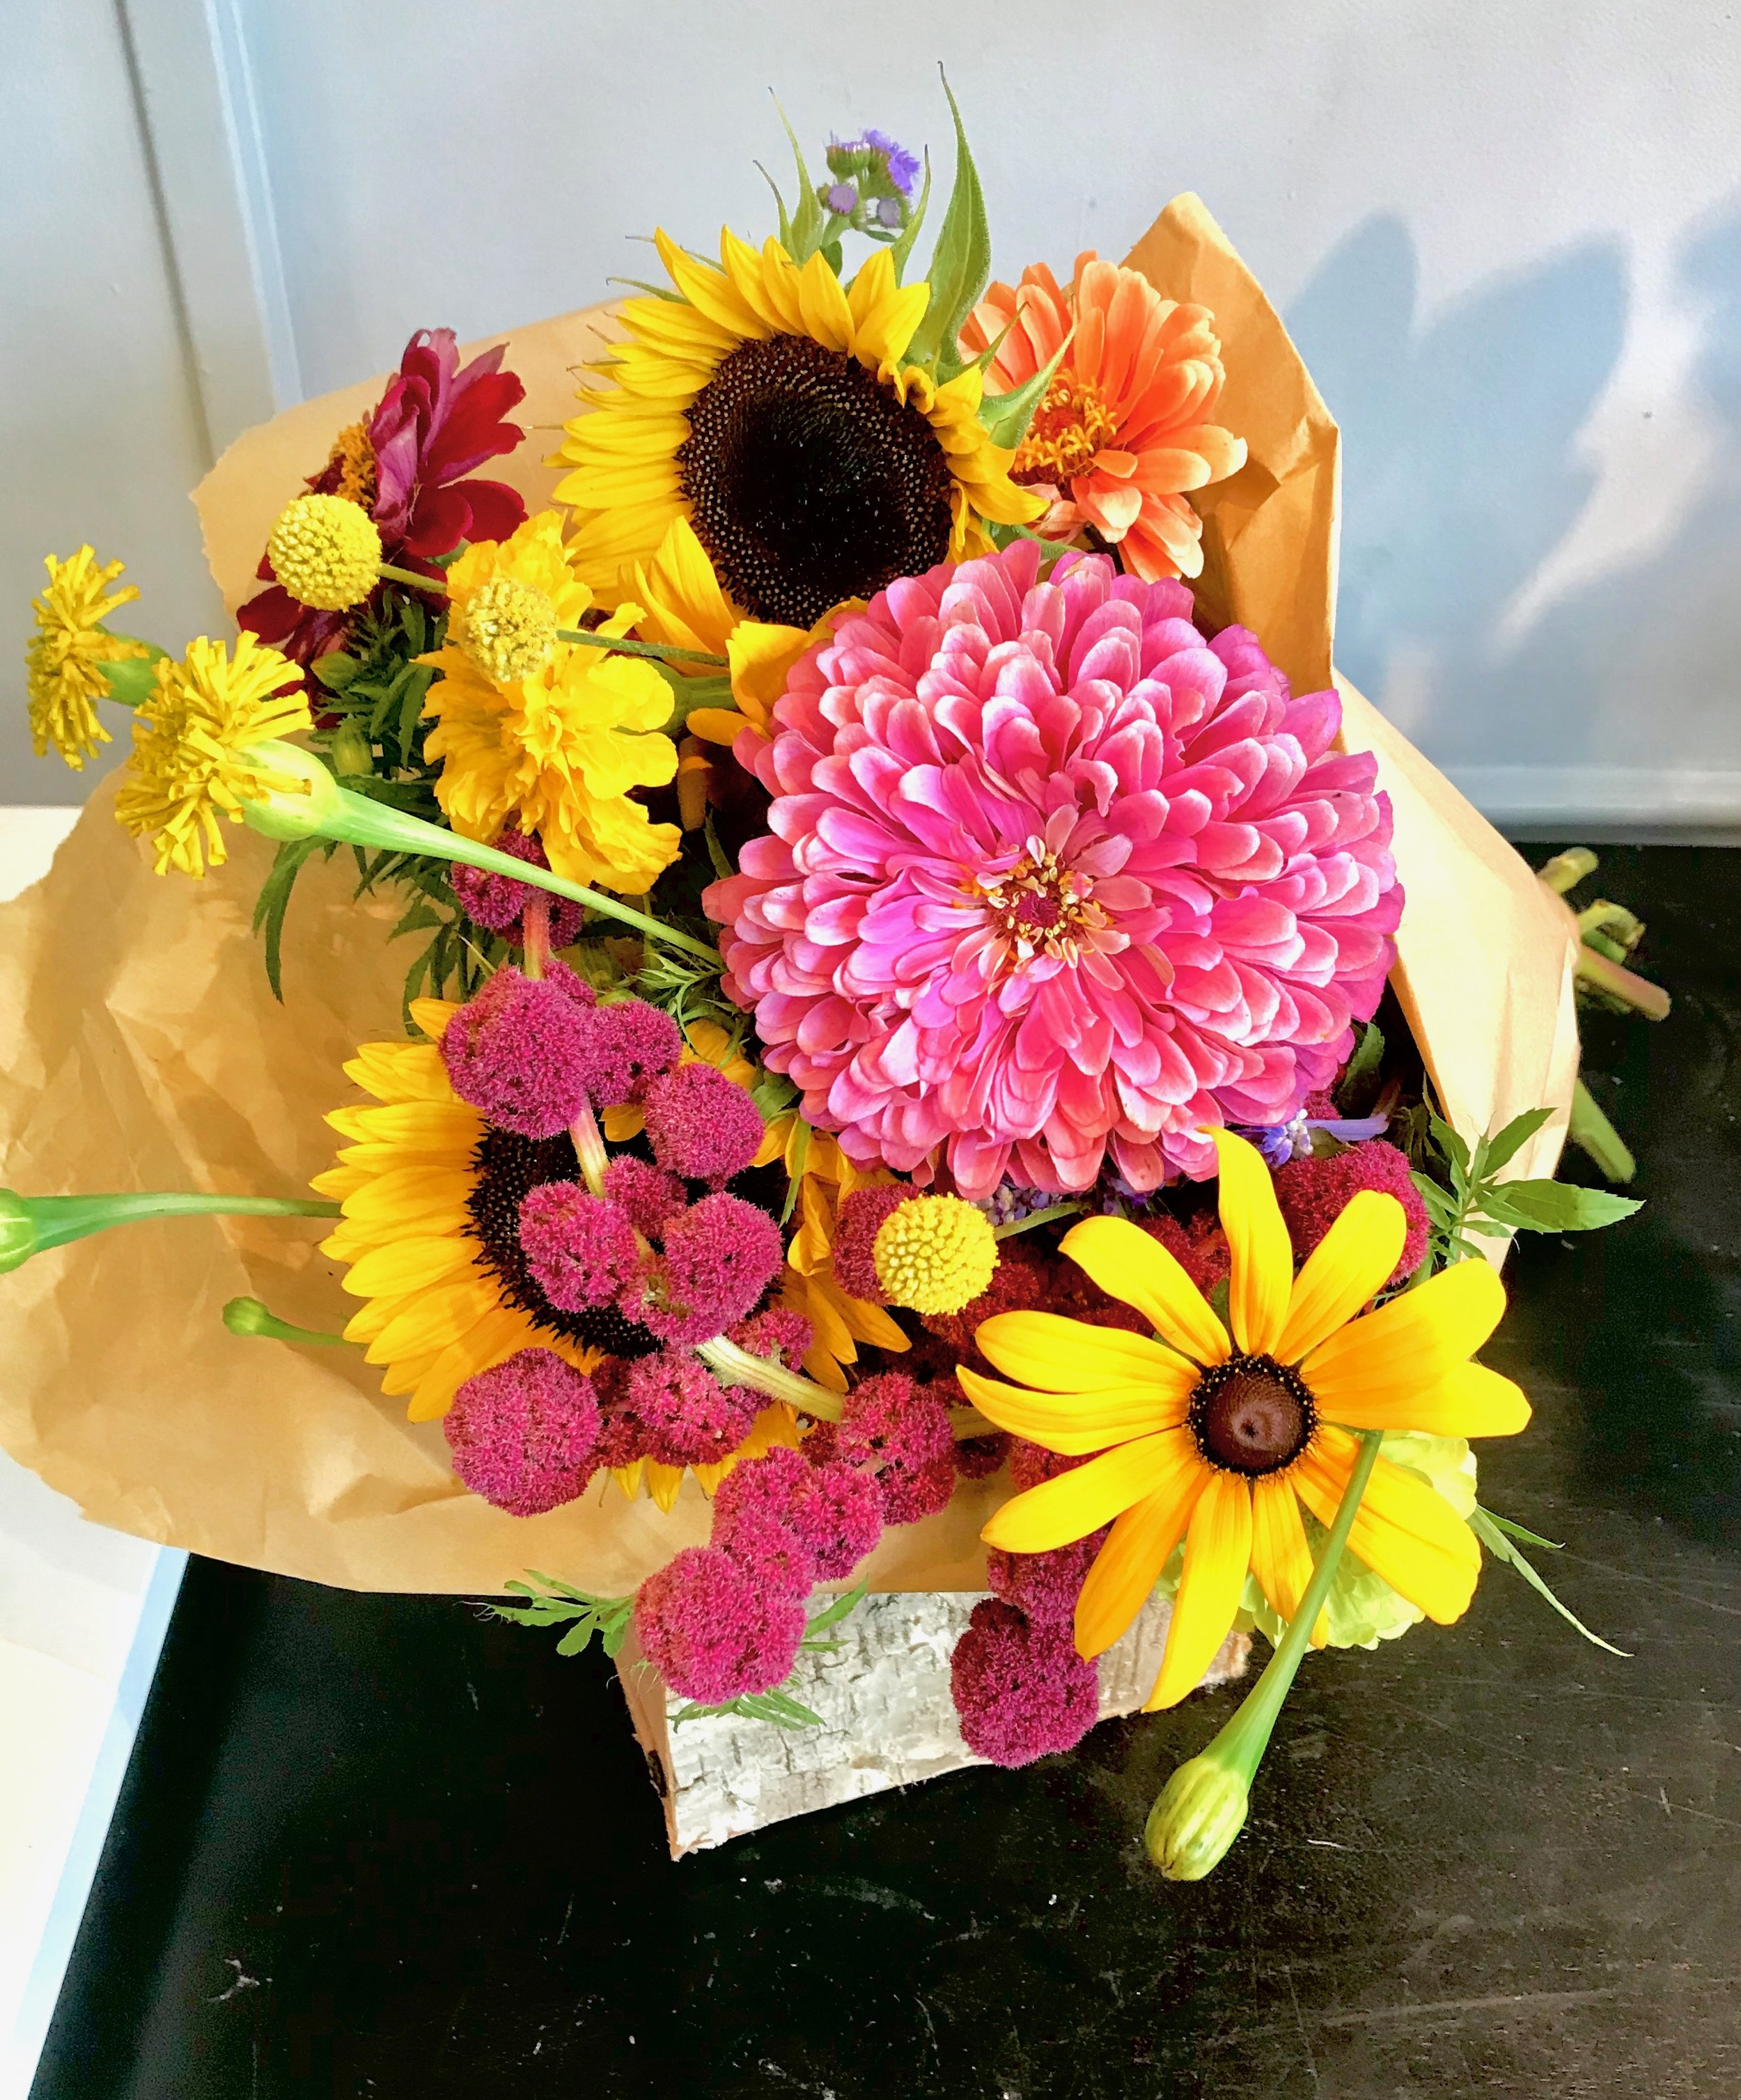 local $25 bouquet - over 25 stems in each bouquet!